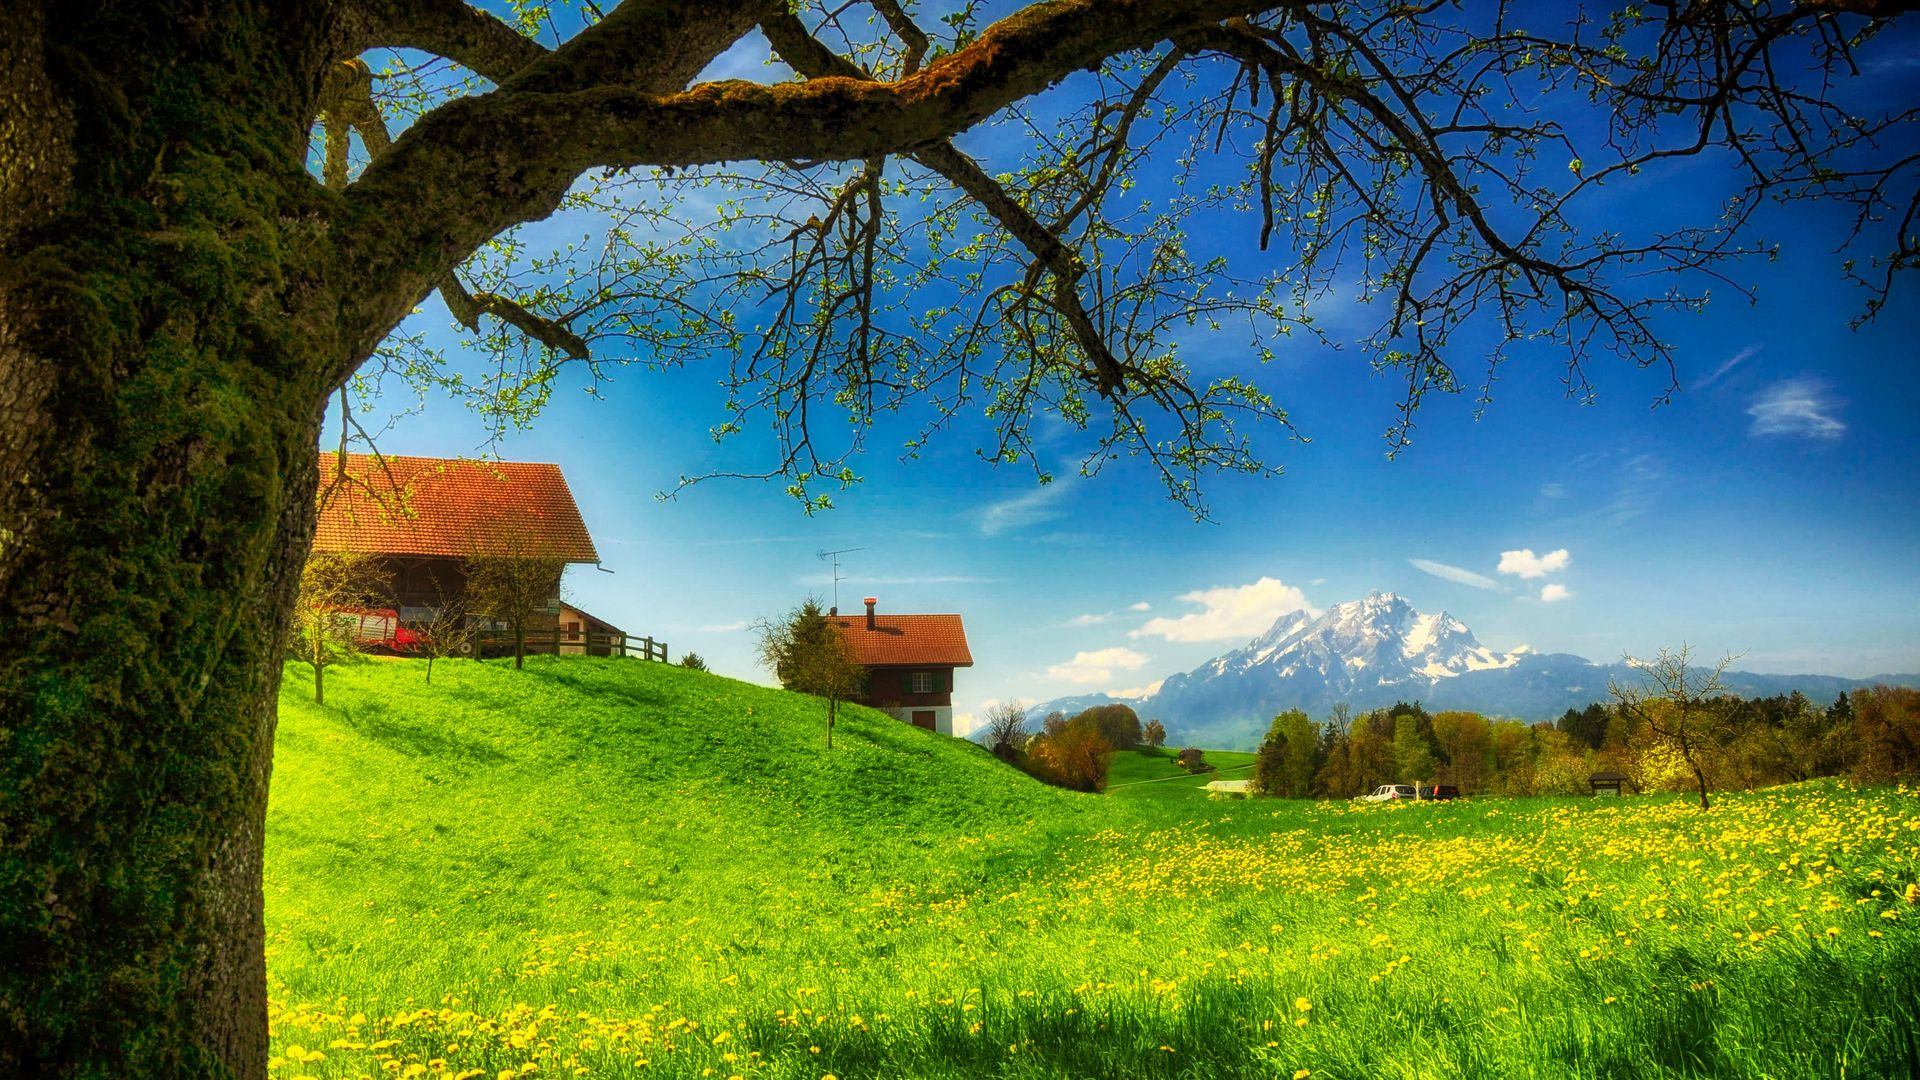 Super Simple Hd Free Best Wallpapers Spring Season